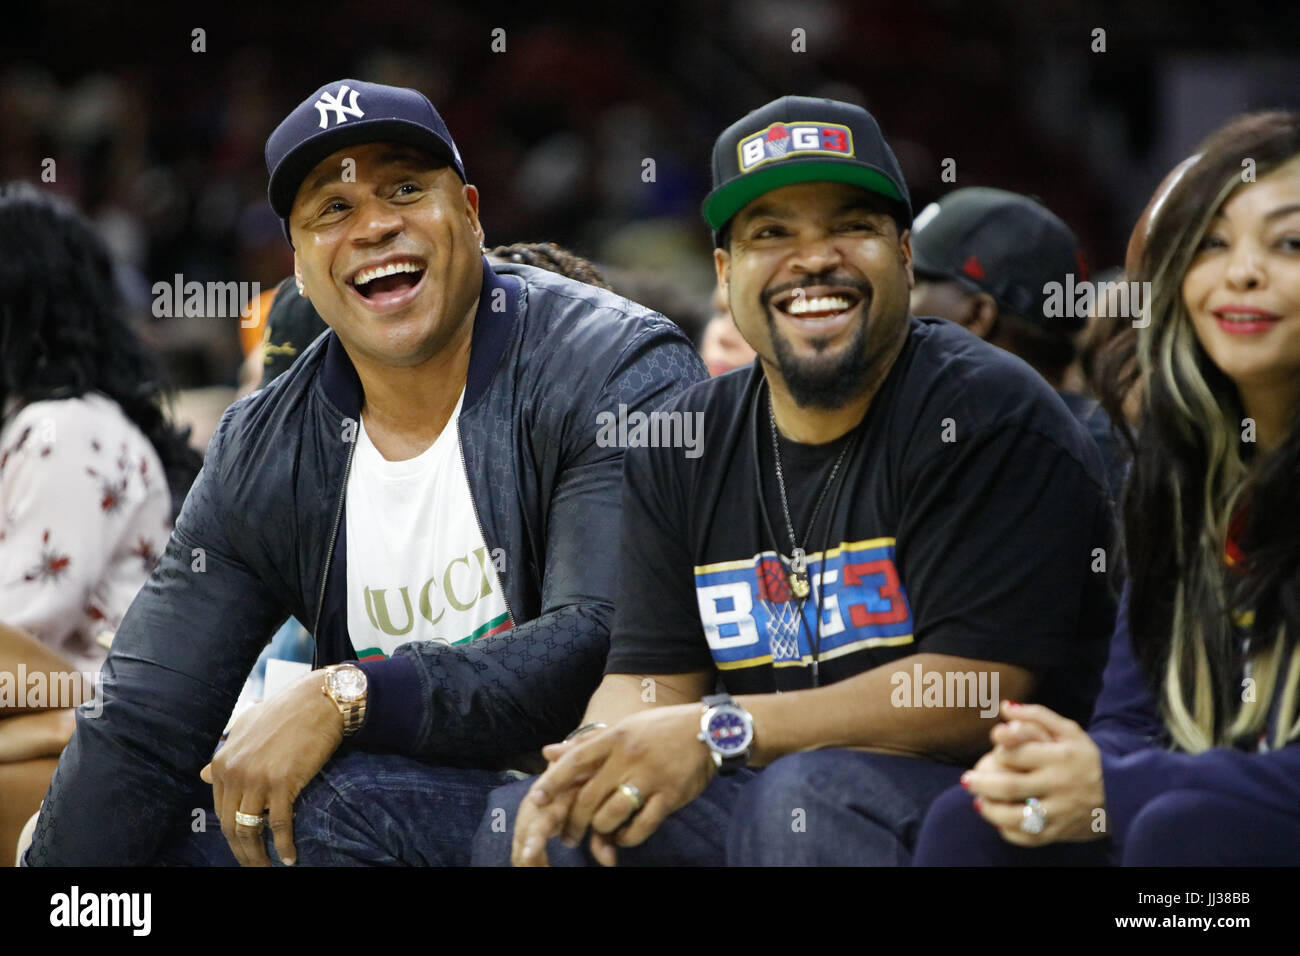 Ll cool j ice cube participer à big 3 phiily,ligue pa 7/16/17 Photo Stock